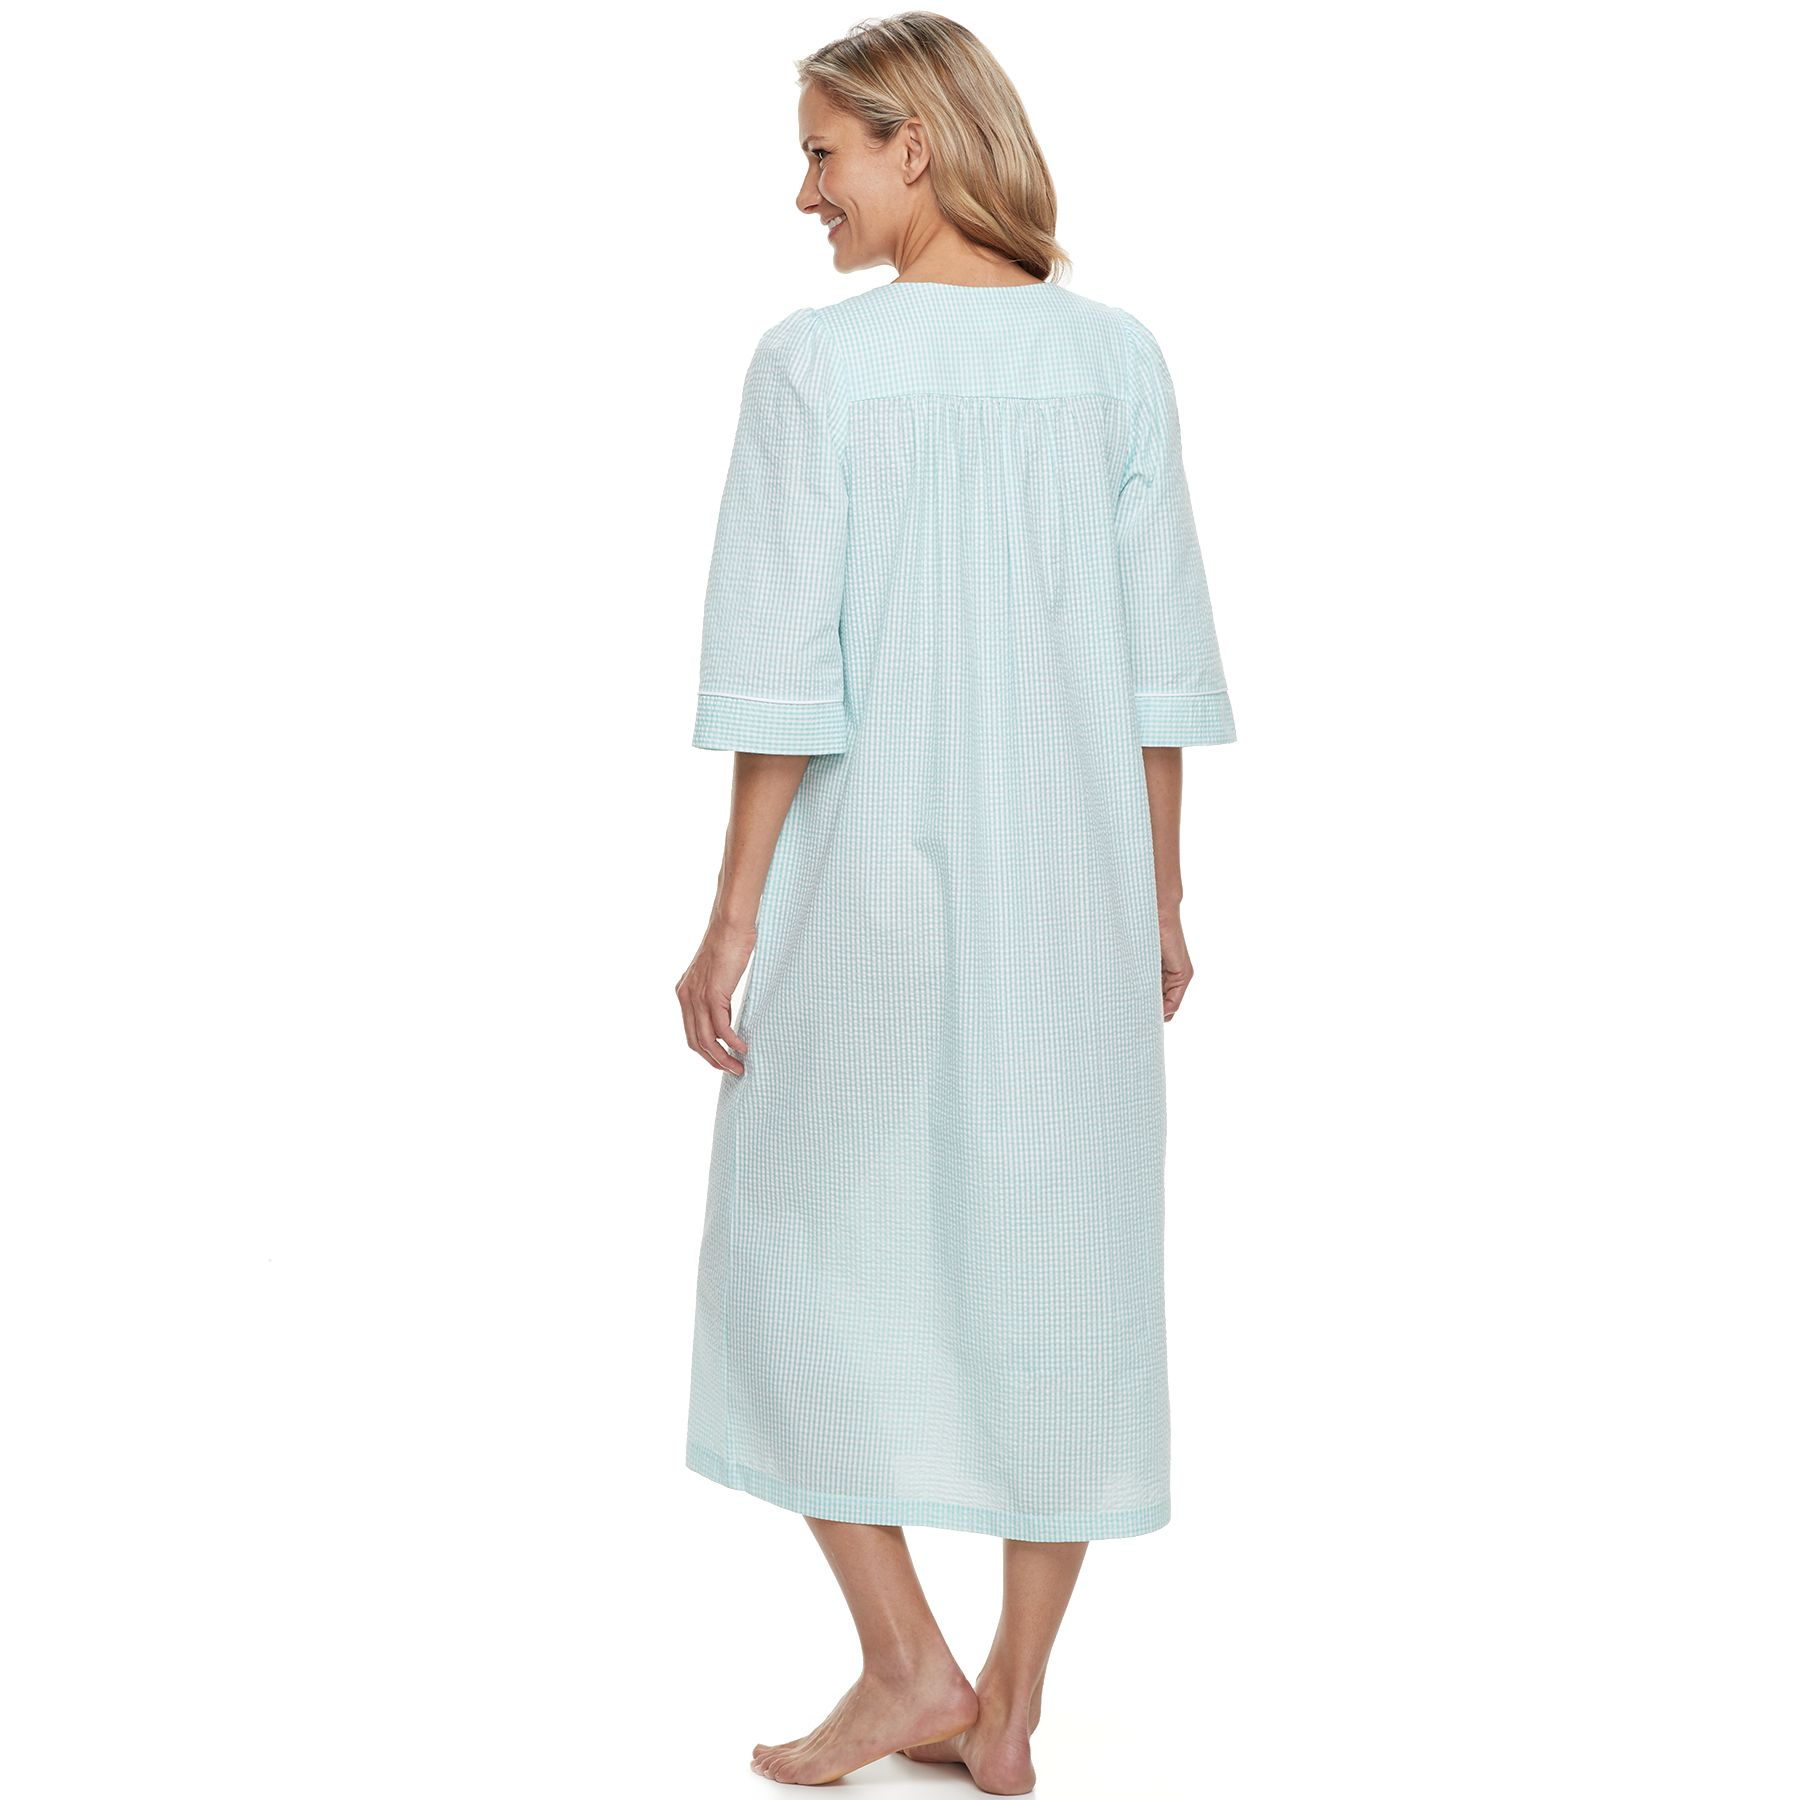 Womens Petite Pajamas, Robes & Sleepwear | Kohl\'s